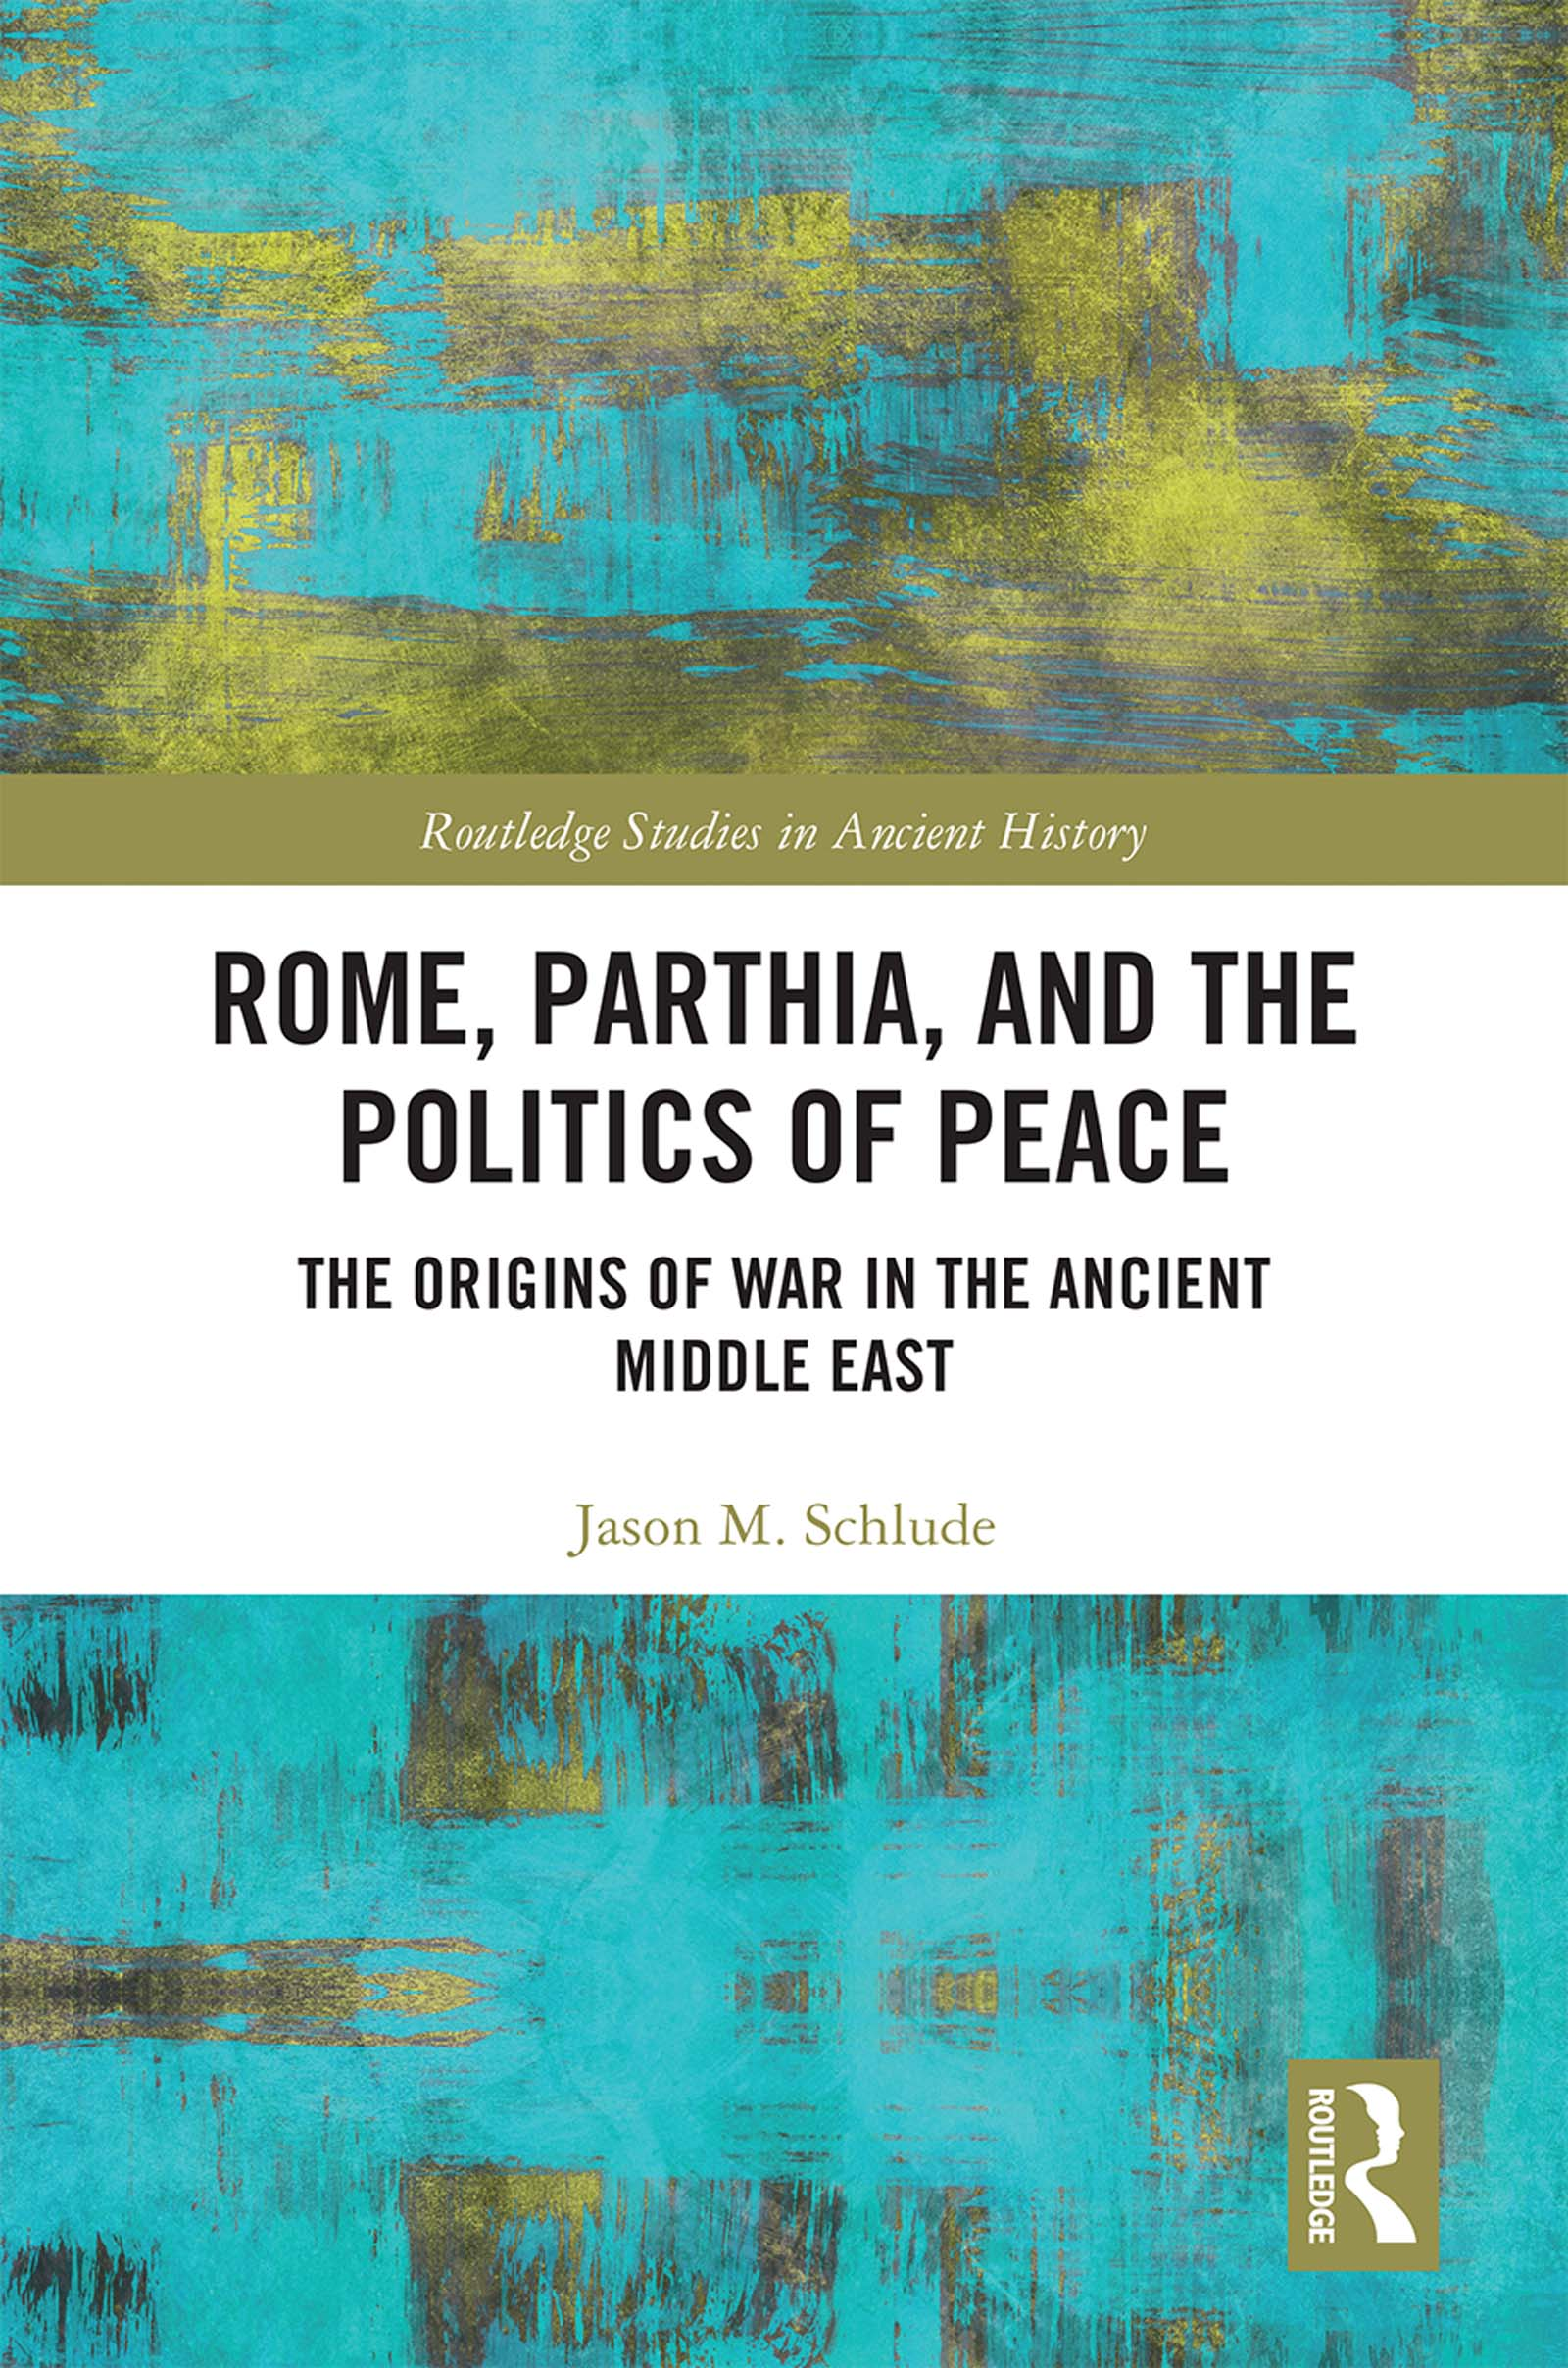 Rome, Parthia, and the Politics of Peace: The Origins of War in the Ancient Middle East book cover